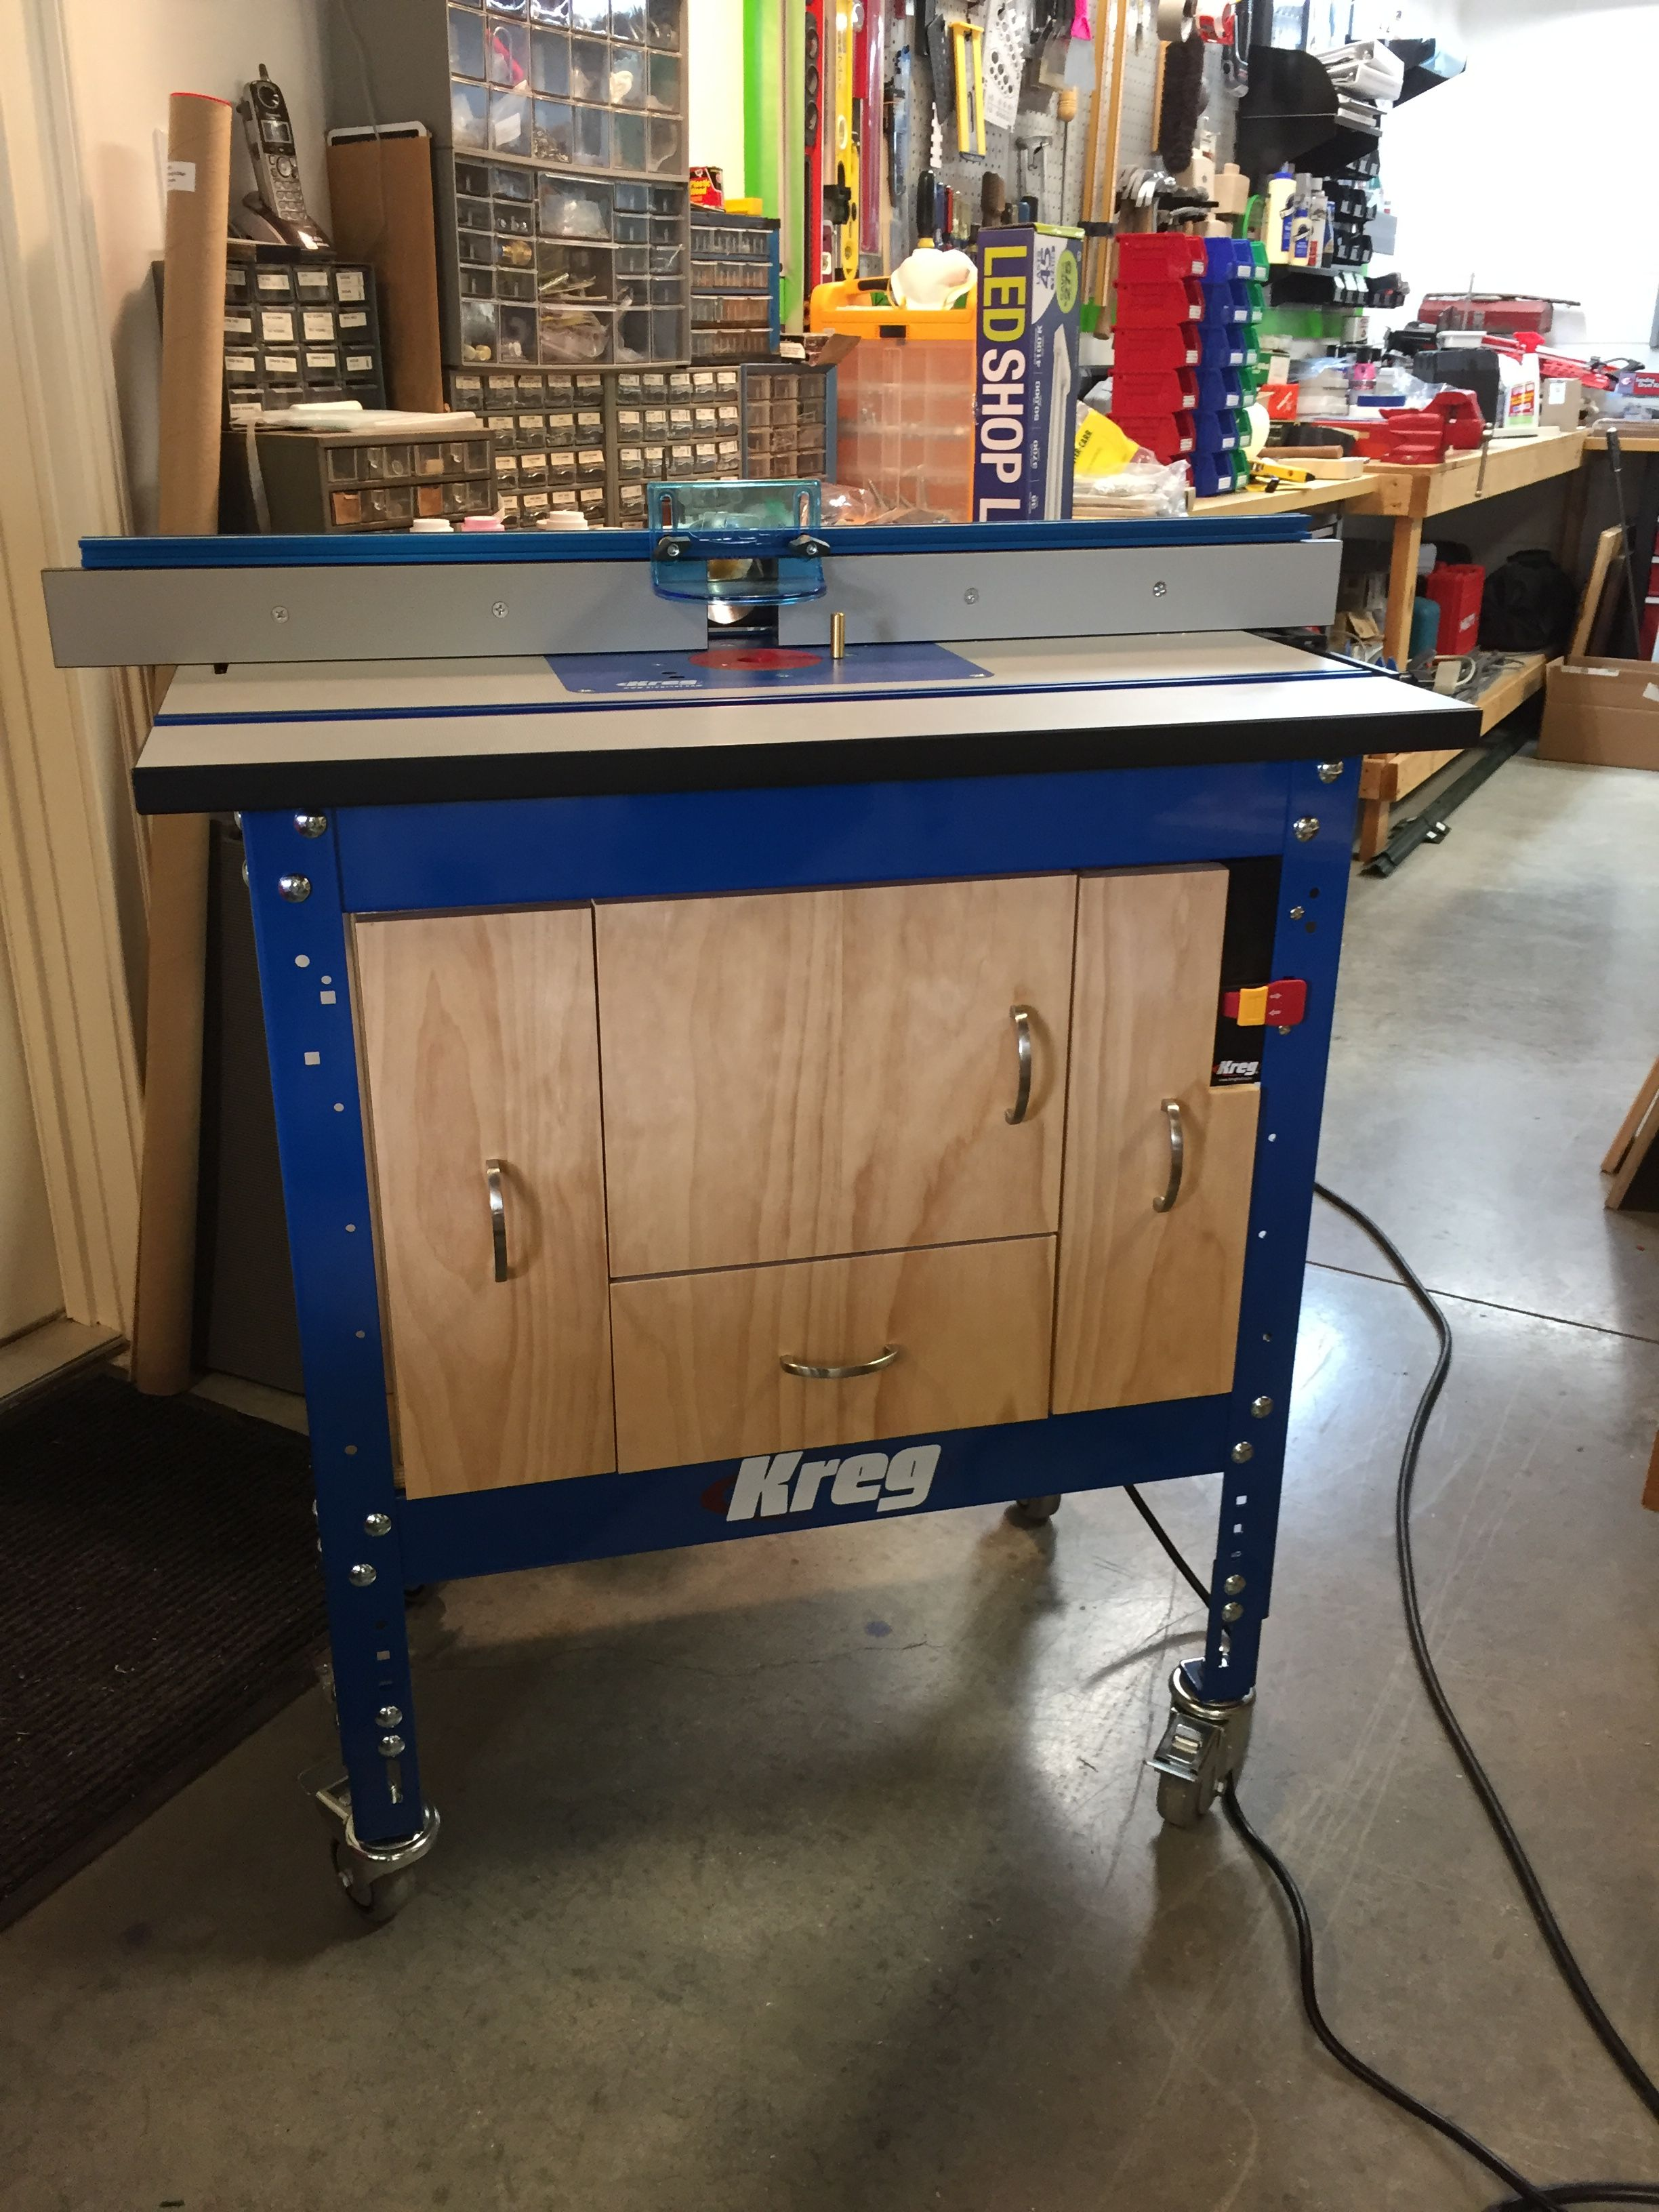 Kreg Router Table Cabinet From Plans With Modifications Added Center Drawer At Bottom Cutoff Safety Switch Upper Right